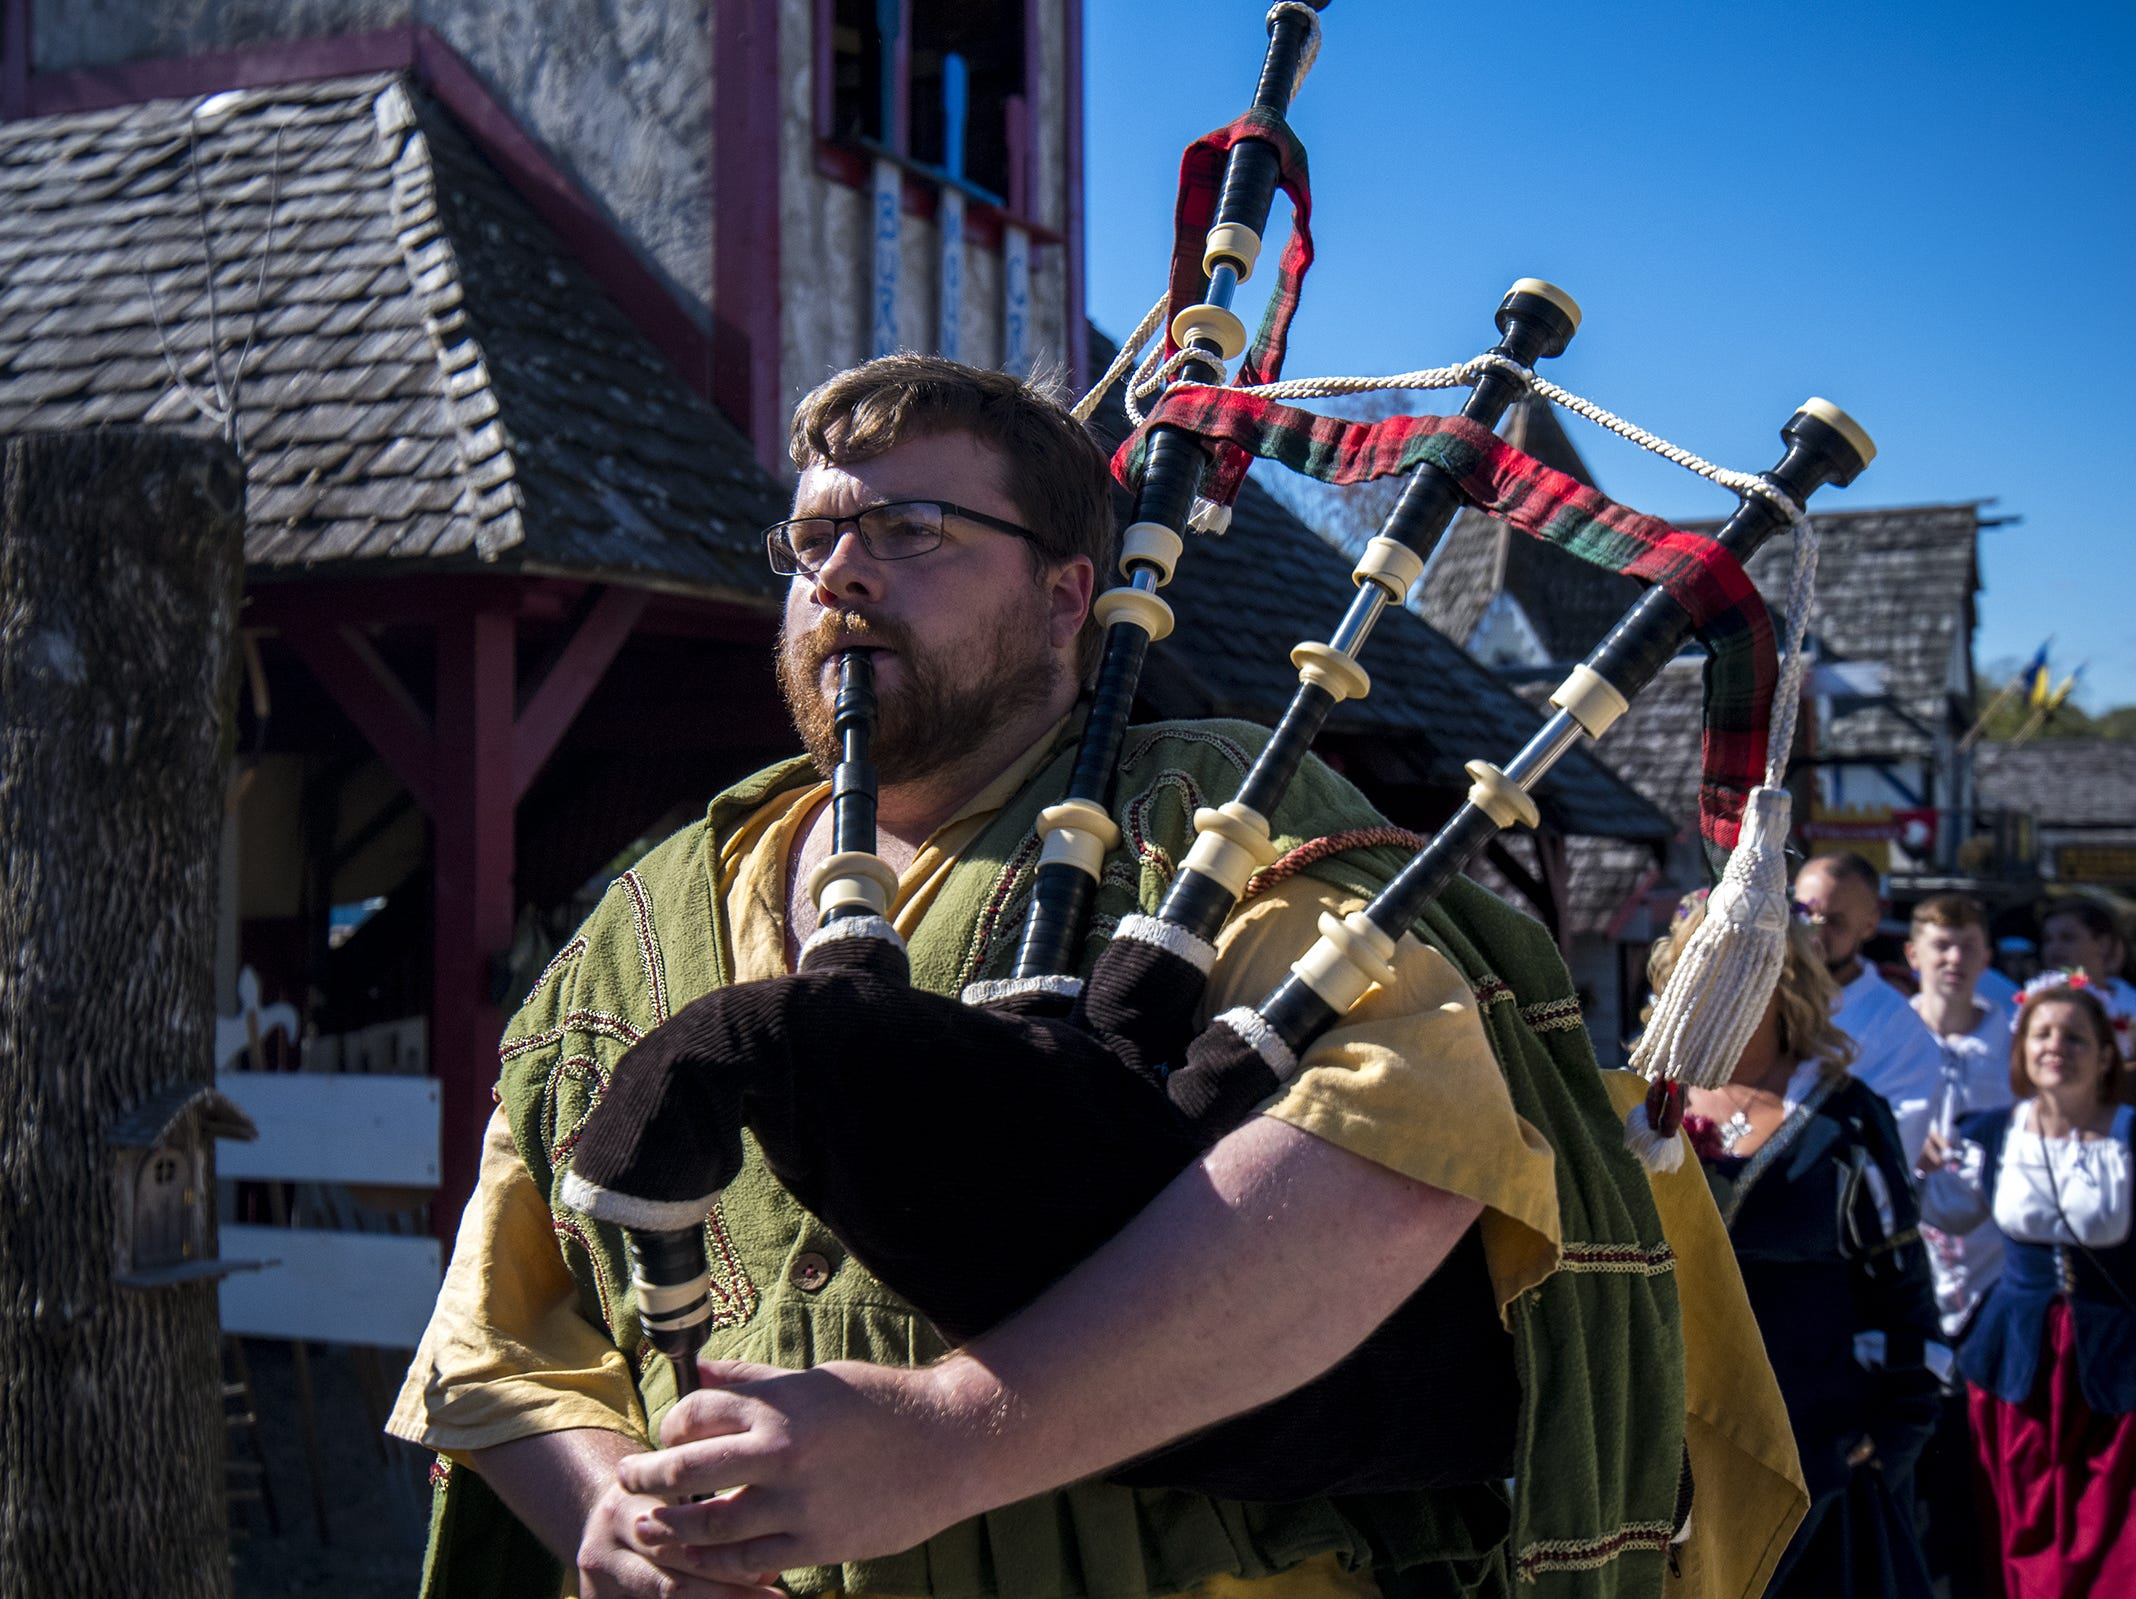 A bagpiper leads a wedding party to the chapel during Romance Weekend at the Ohio Renaissance Festival Sunday, October 21, 2018 in Waynesville, Ohio.